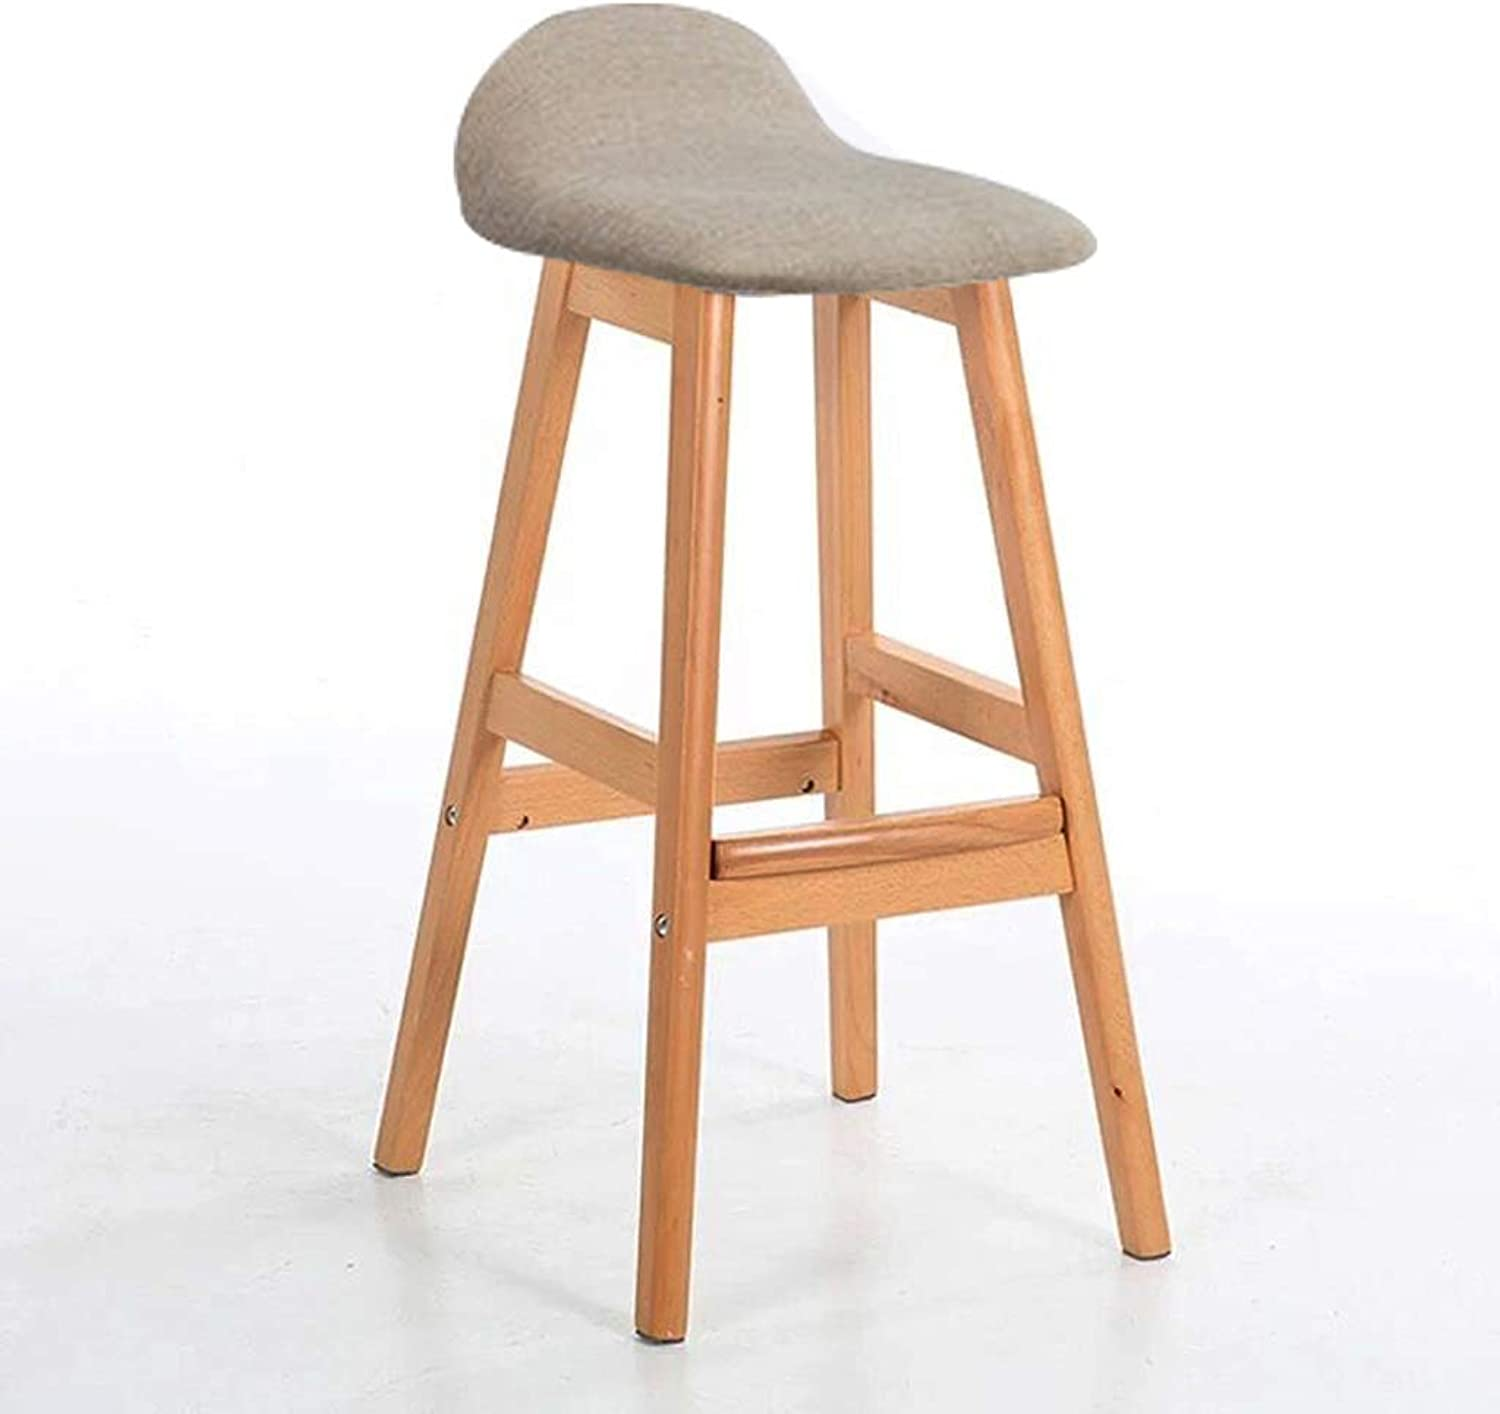 Bar Chair Modern Style Bar Stools Counter Chair Kitchen Breakfast Barstool Wooden Legs